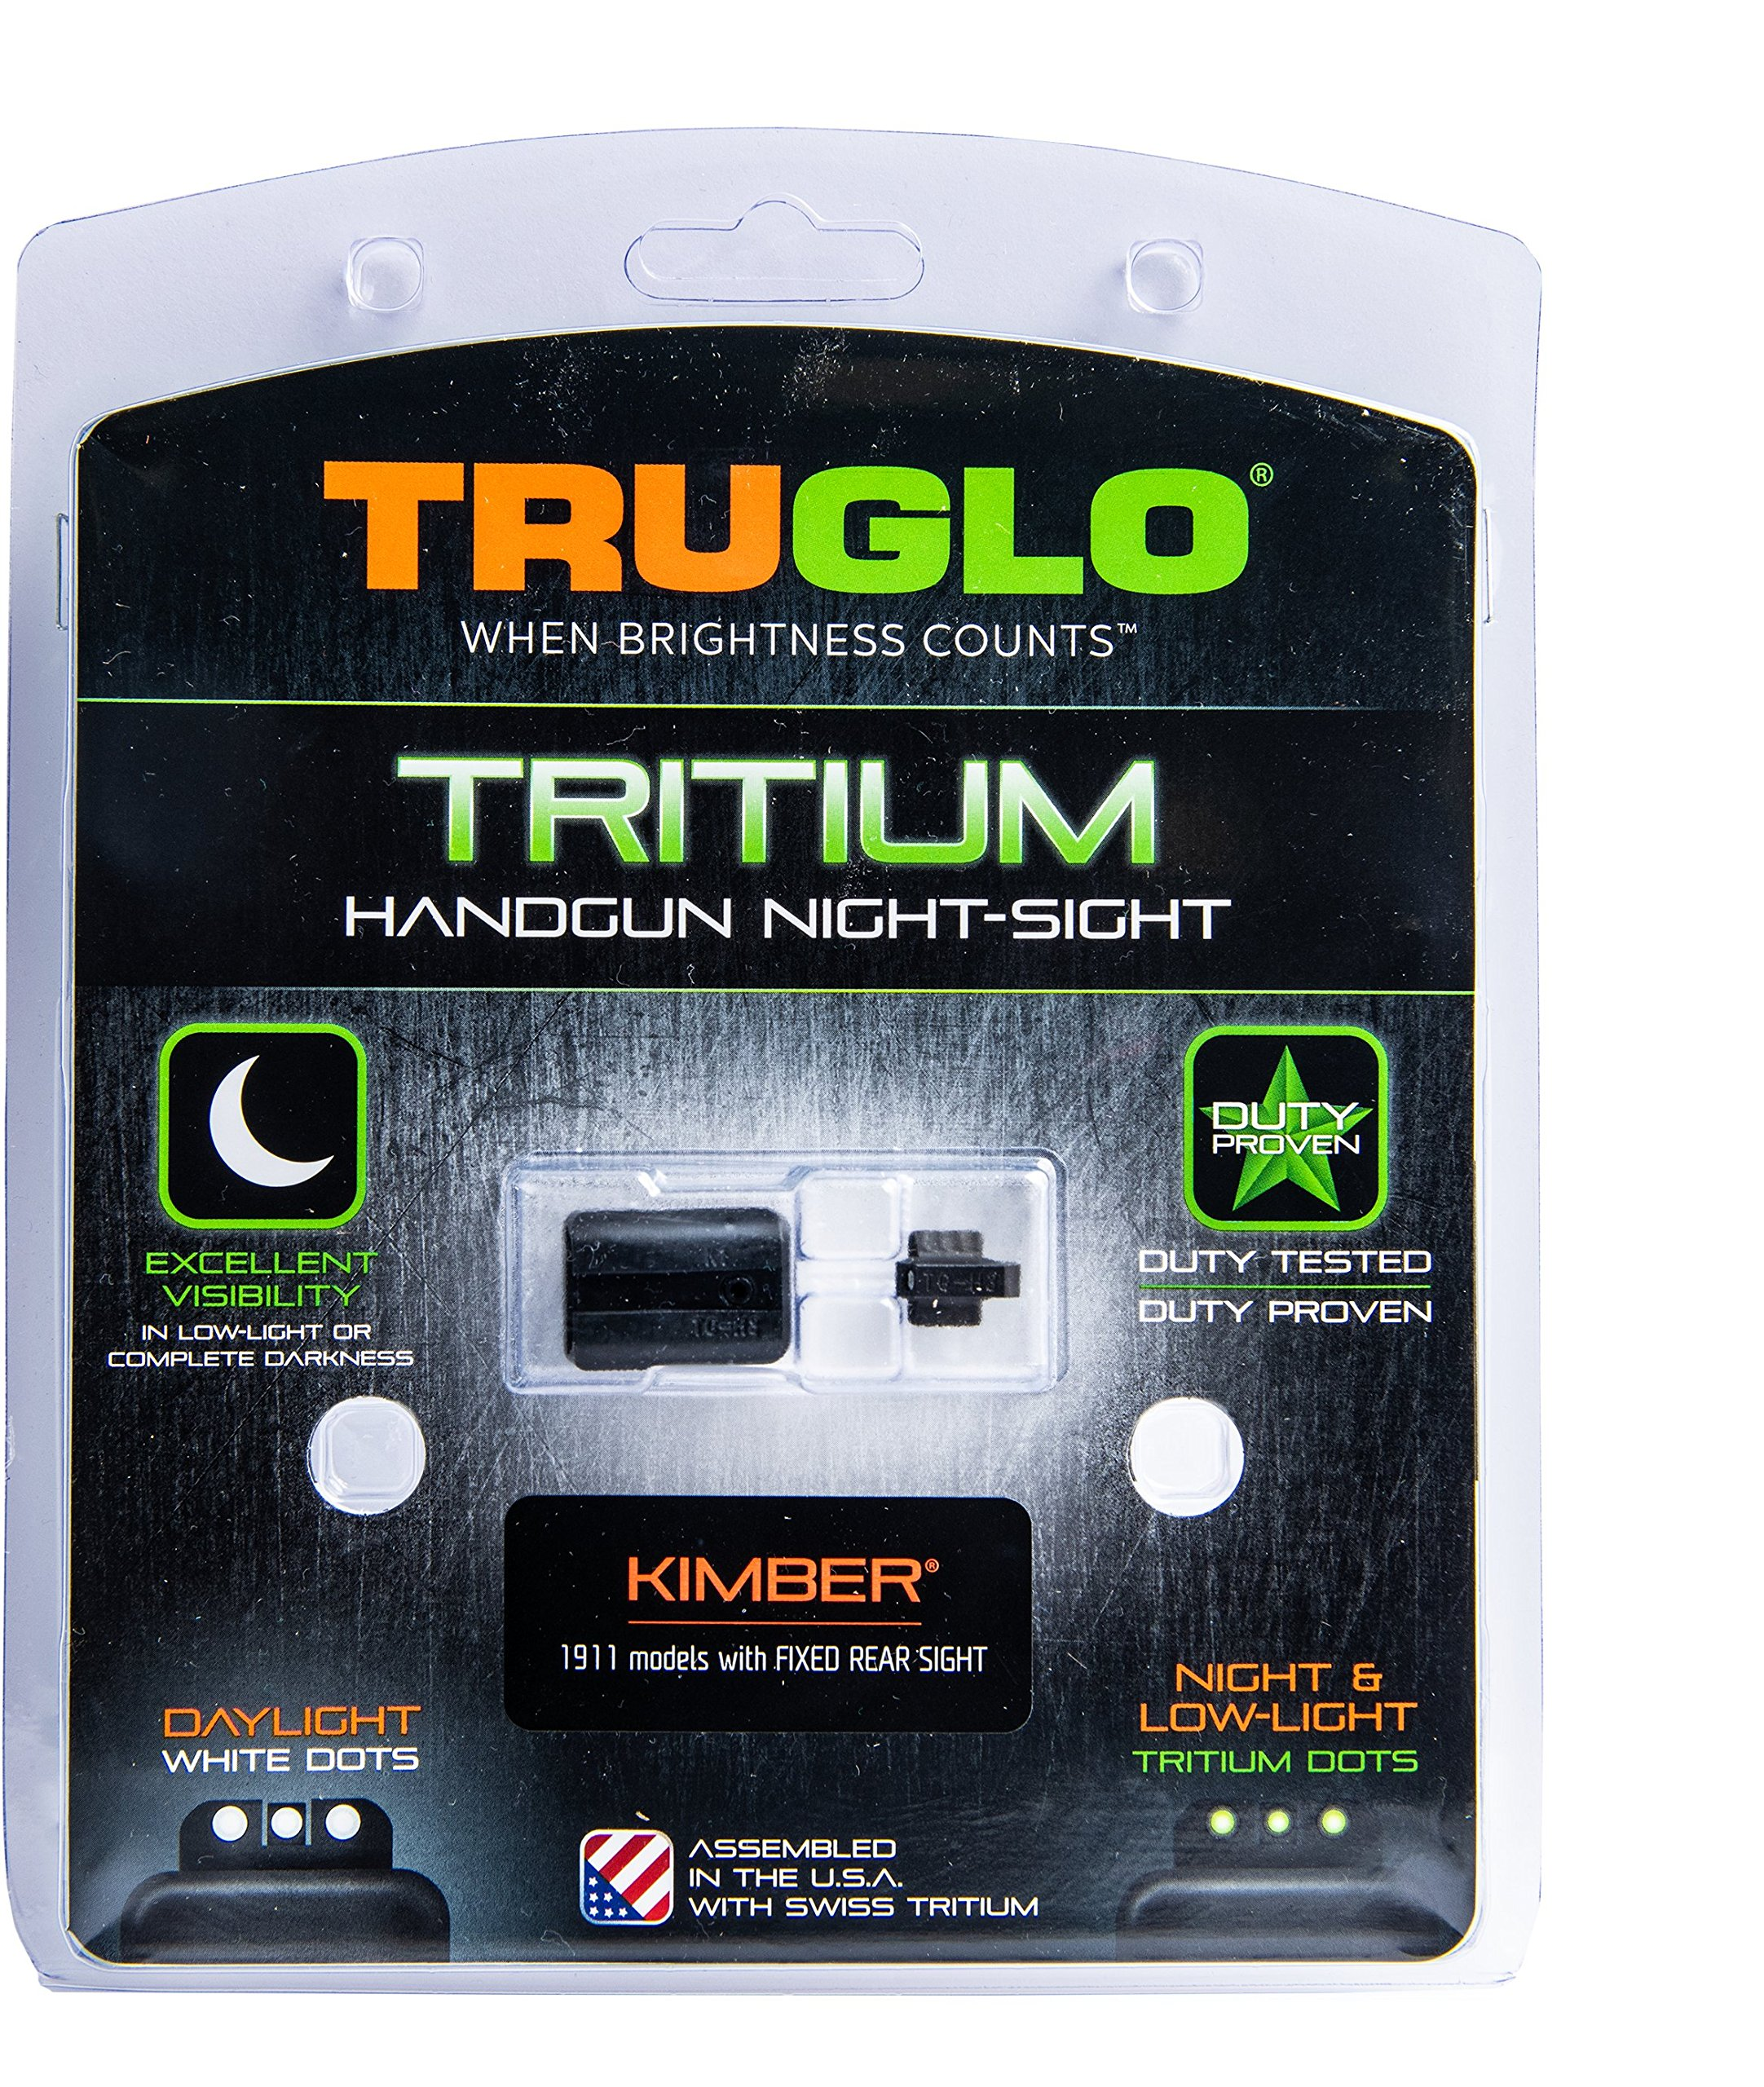 TRUGLO Tritium Handgun Glow-in-the-Dark Night Sights for Kimber Pistols, Kimber 1911 Models with Fixed Rear Sight by TRUGLO (Image #4)